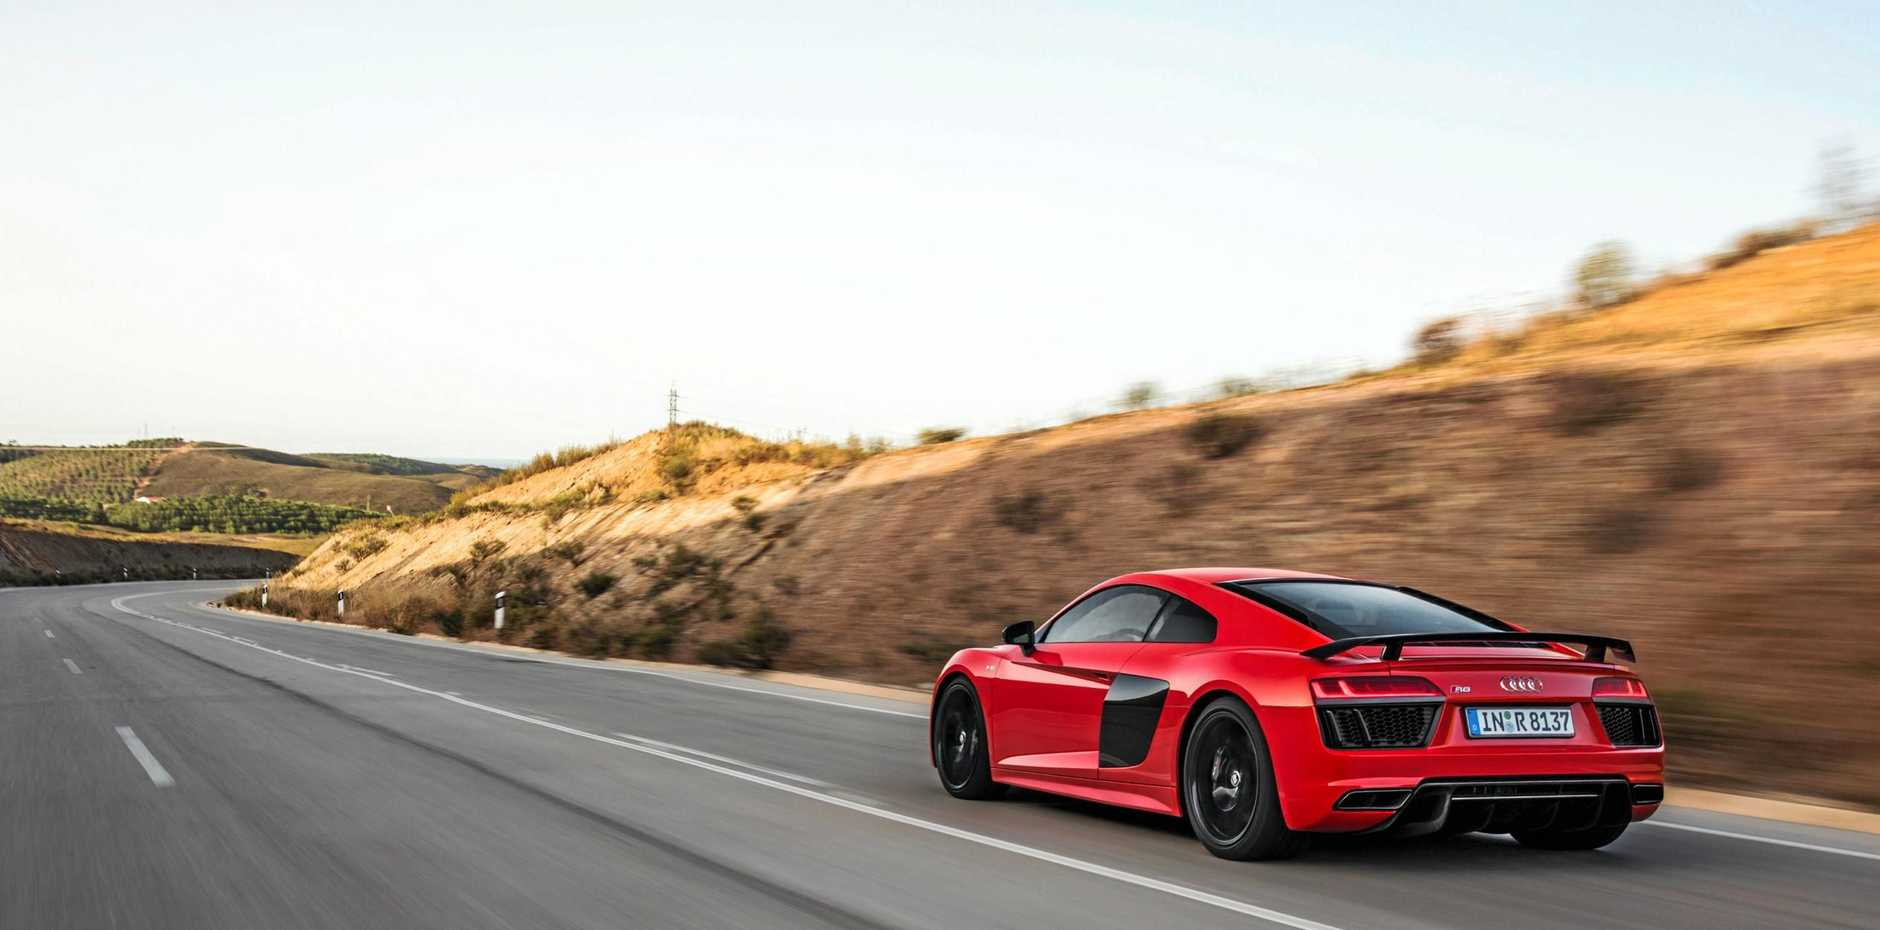 Audi has announced the production of an exclusive, limited edition R8 V10 plus Neuburg Edition specifically developed for the Australian market.